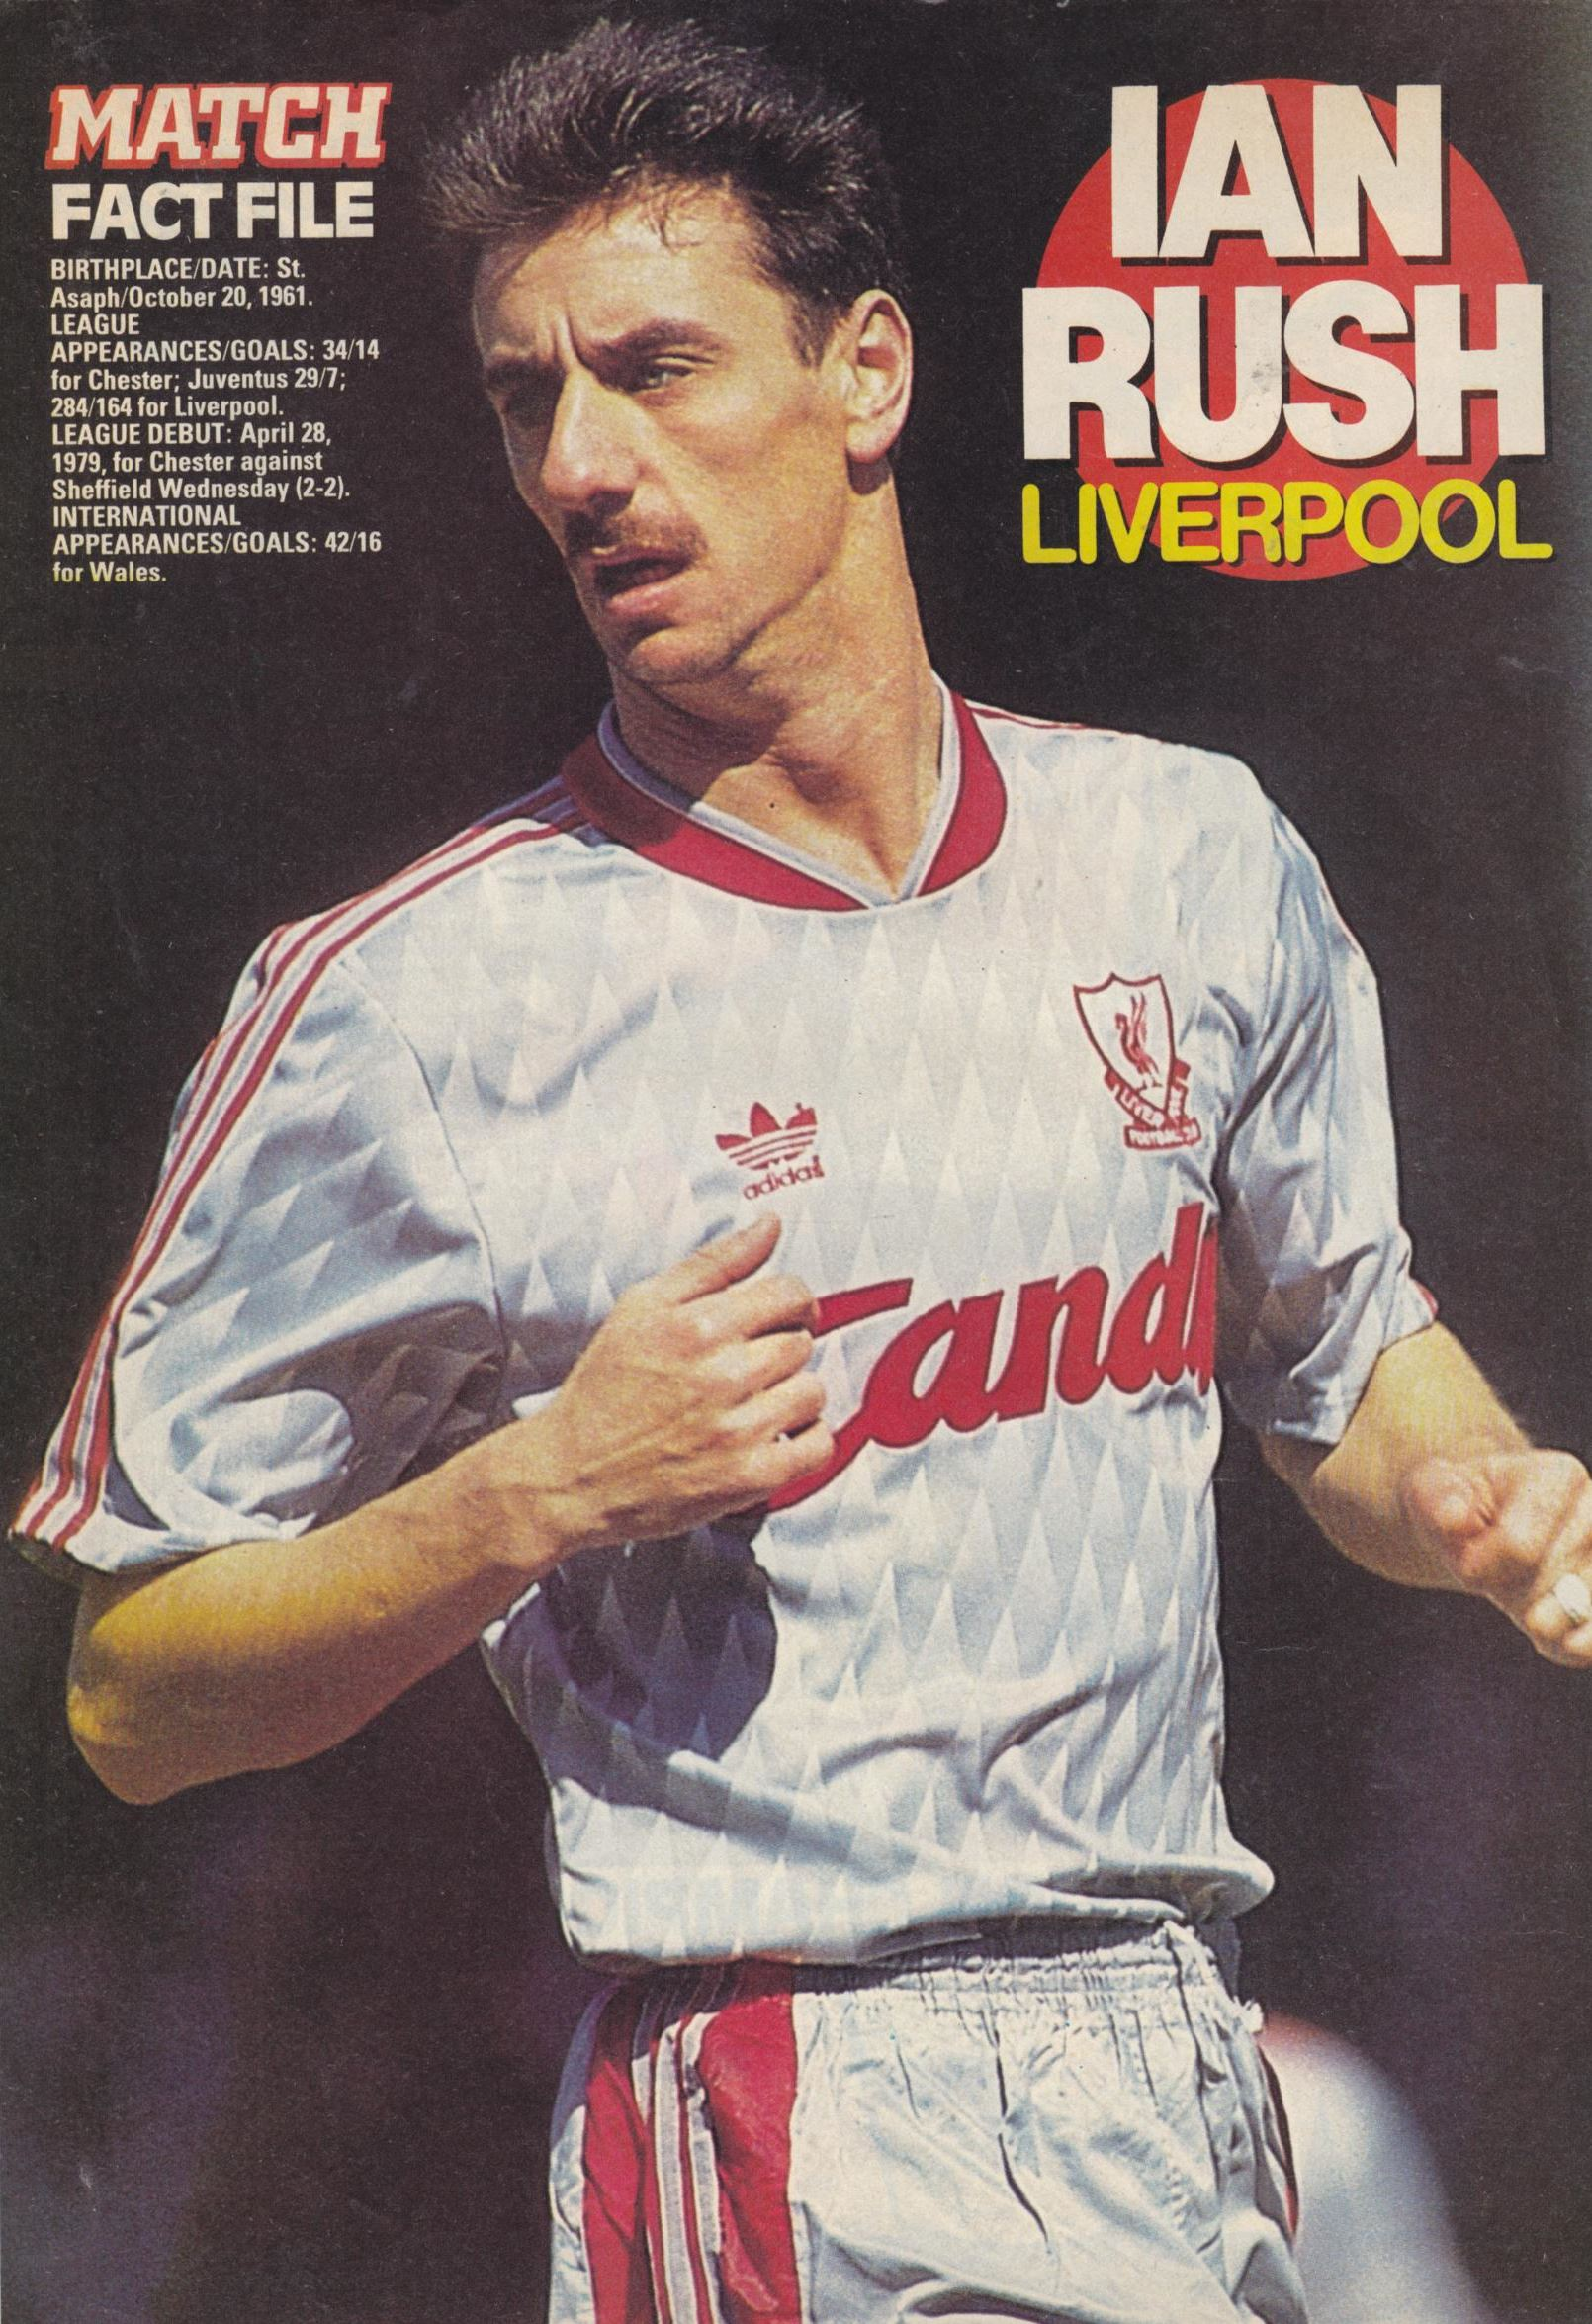 premium selection 7159f 356d8 Liverpool career stats for Ian Rush - LFChistory - Stats ...